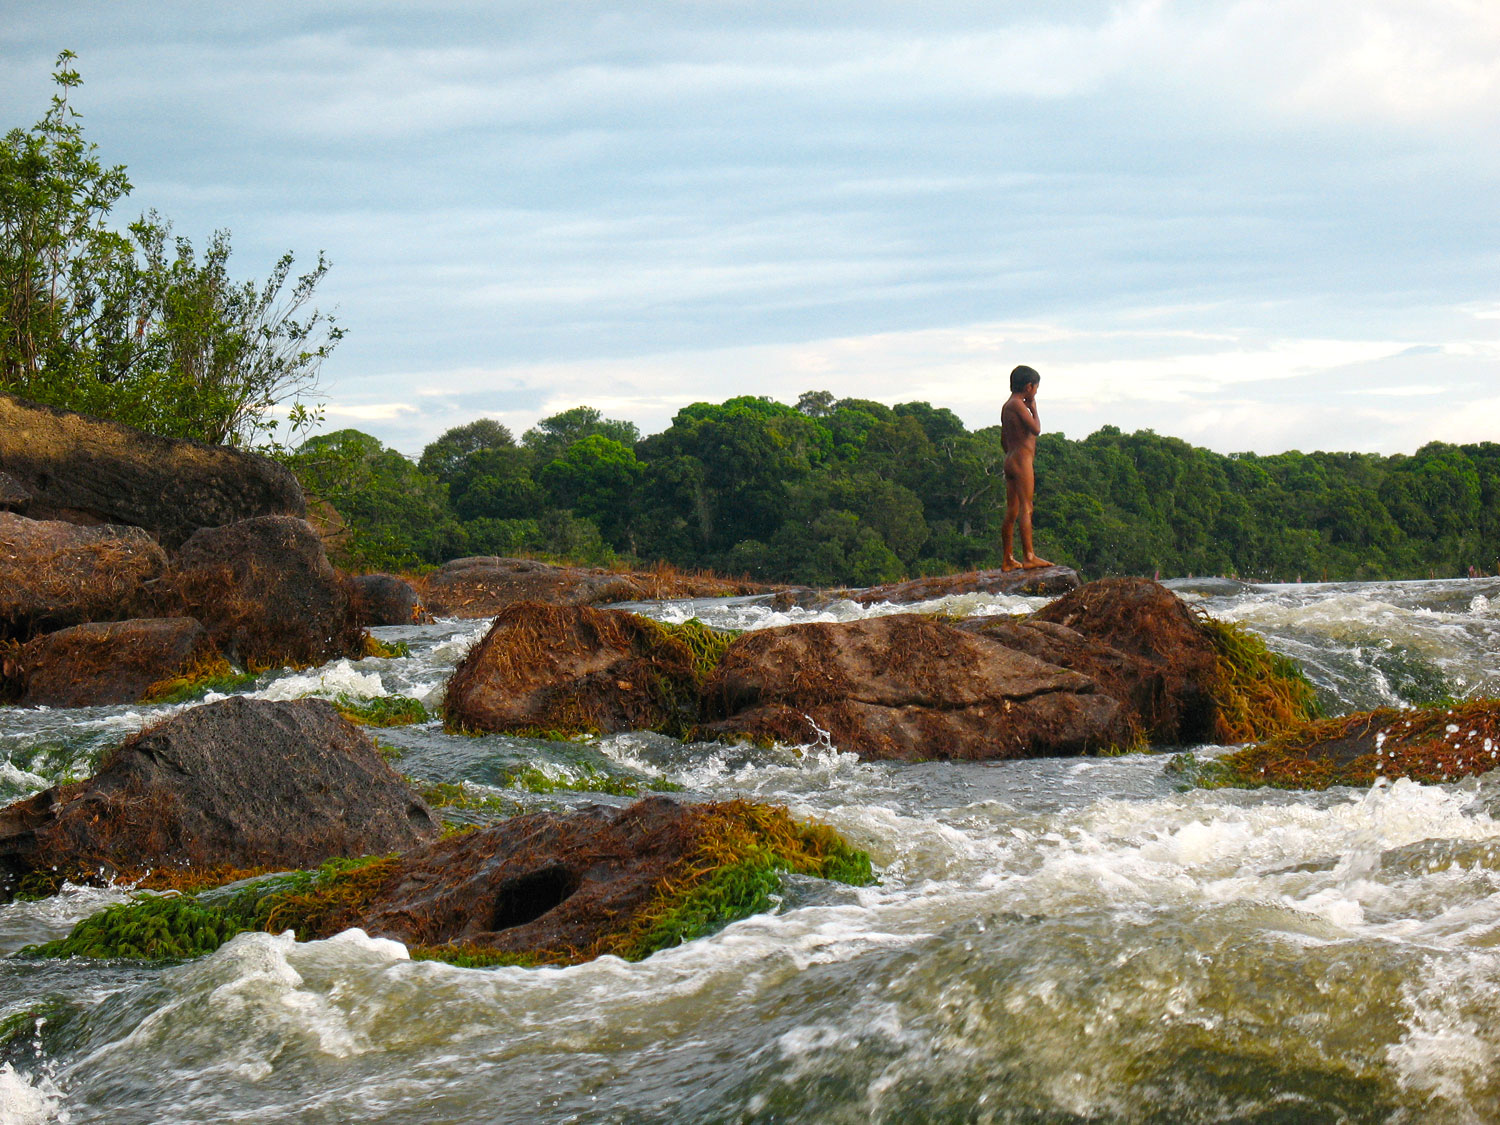 An Amerindian boy gets ready to jump into the rapids on the Essequibo River, near Fair View village. Photograph by Skye Hernandez